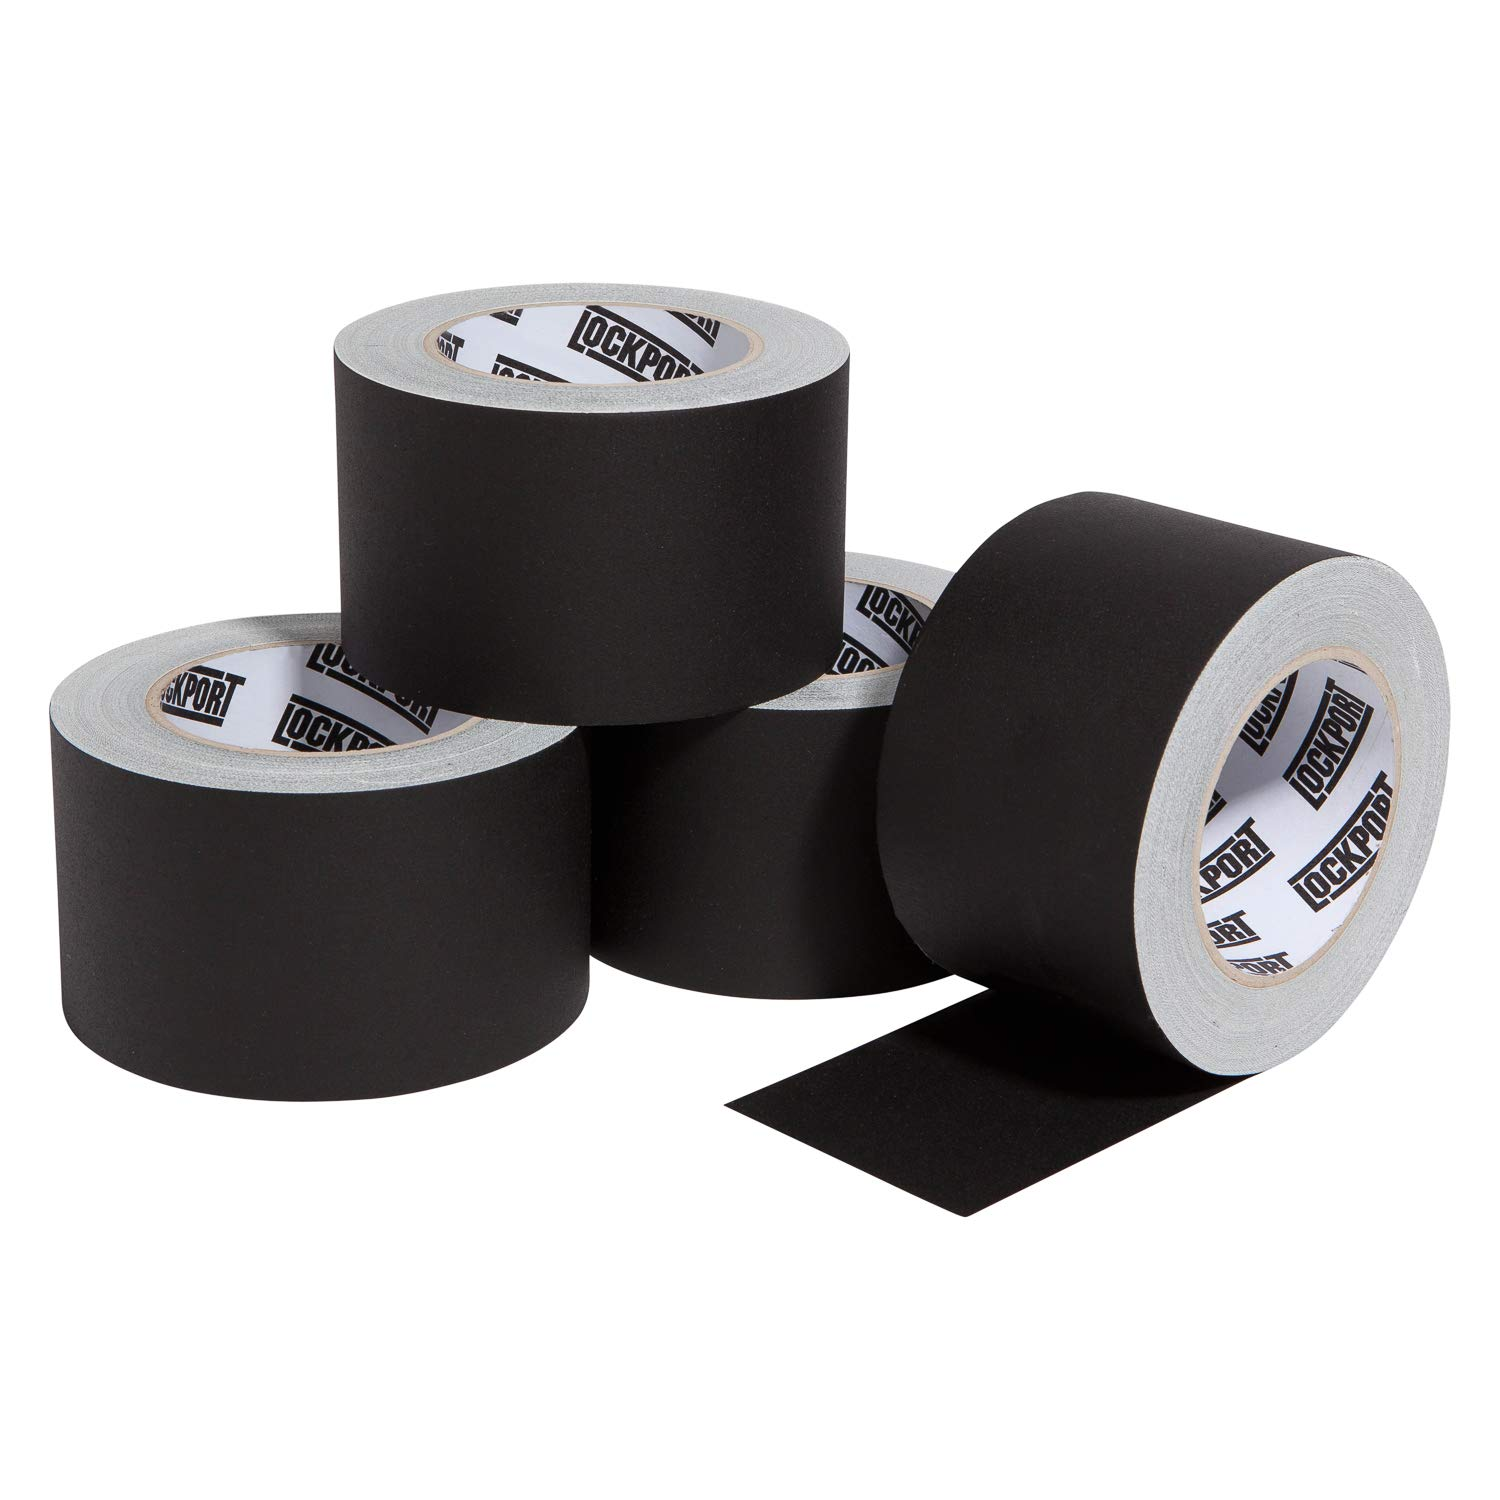 3 Inch Black Gaffers Tape - 4 Roll Multi Pack - 30 Yards per Roll - Easy Tear, Non Residue Gaff Tape - Waterproof Matte Cloth Gaffing Tape for Professional Photography, Filming, Stage Use